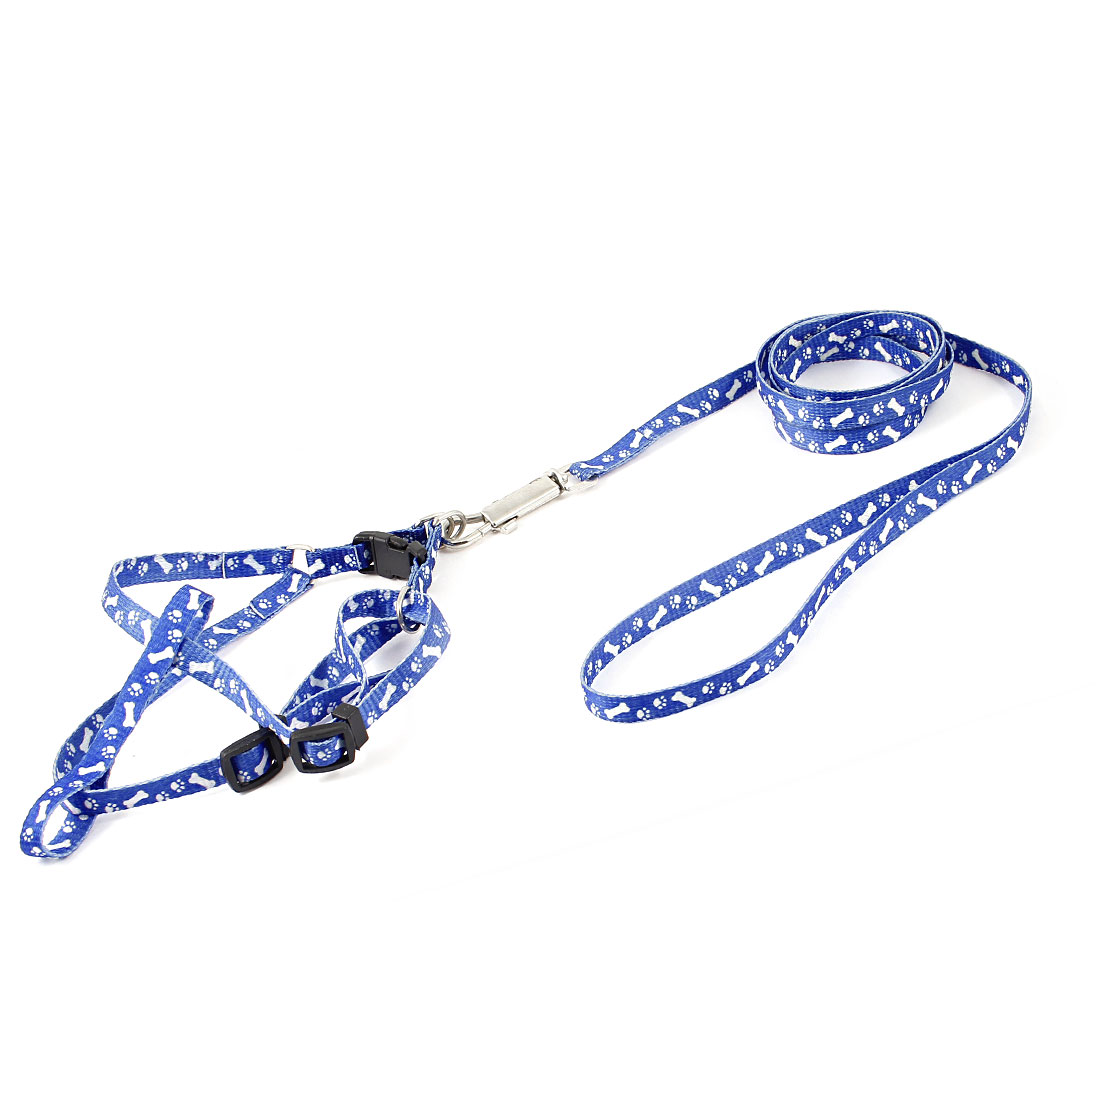 Metal Trigger Hook White Bone Paw Pattern Pet Dog Yorkie Harness Halter Leash Blue